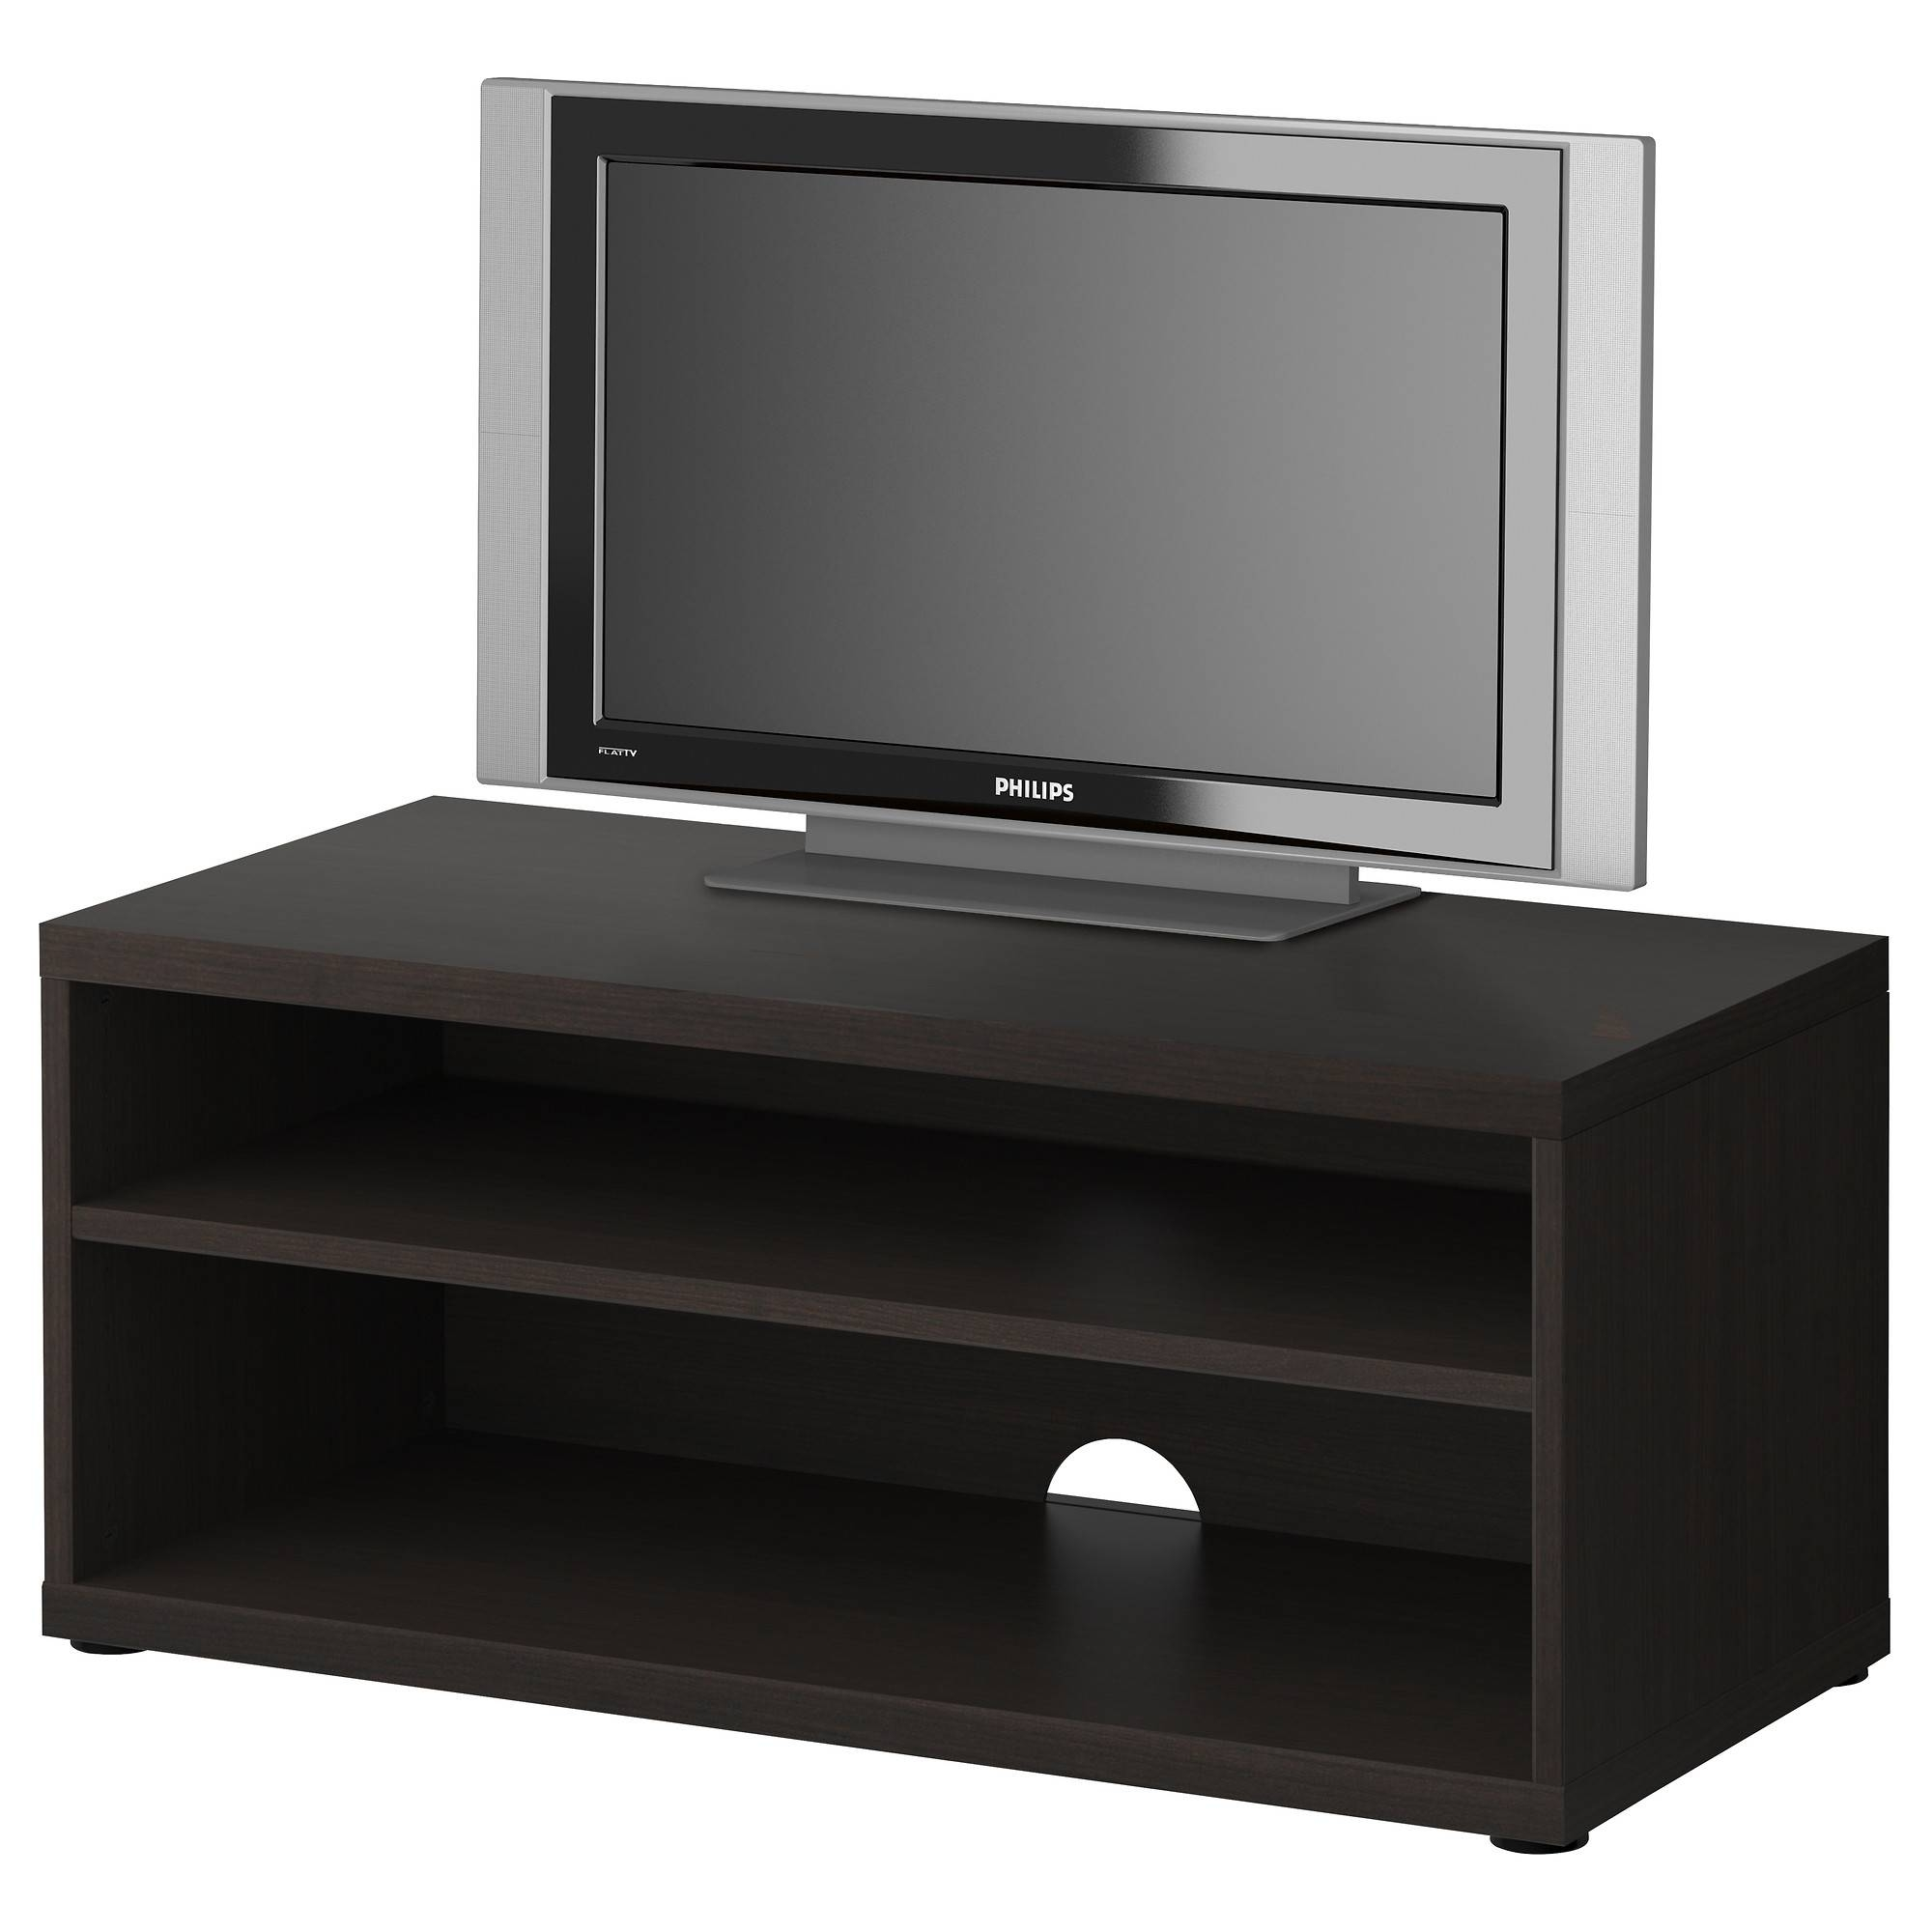 Tv Stands & Media Units | Ikea Ireland – Dublin in 60 Cm High Tv Stand (Image 13 of 15)